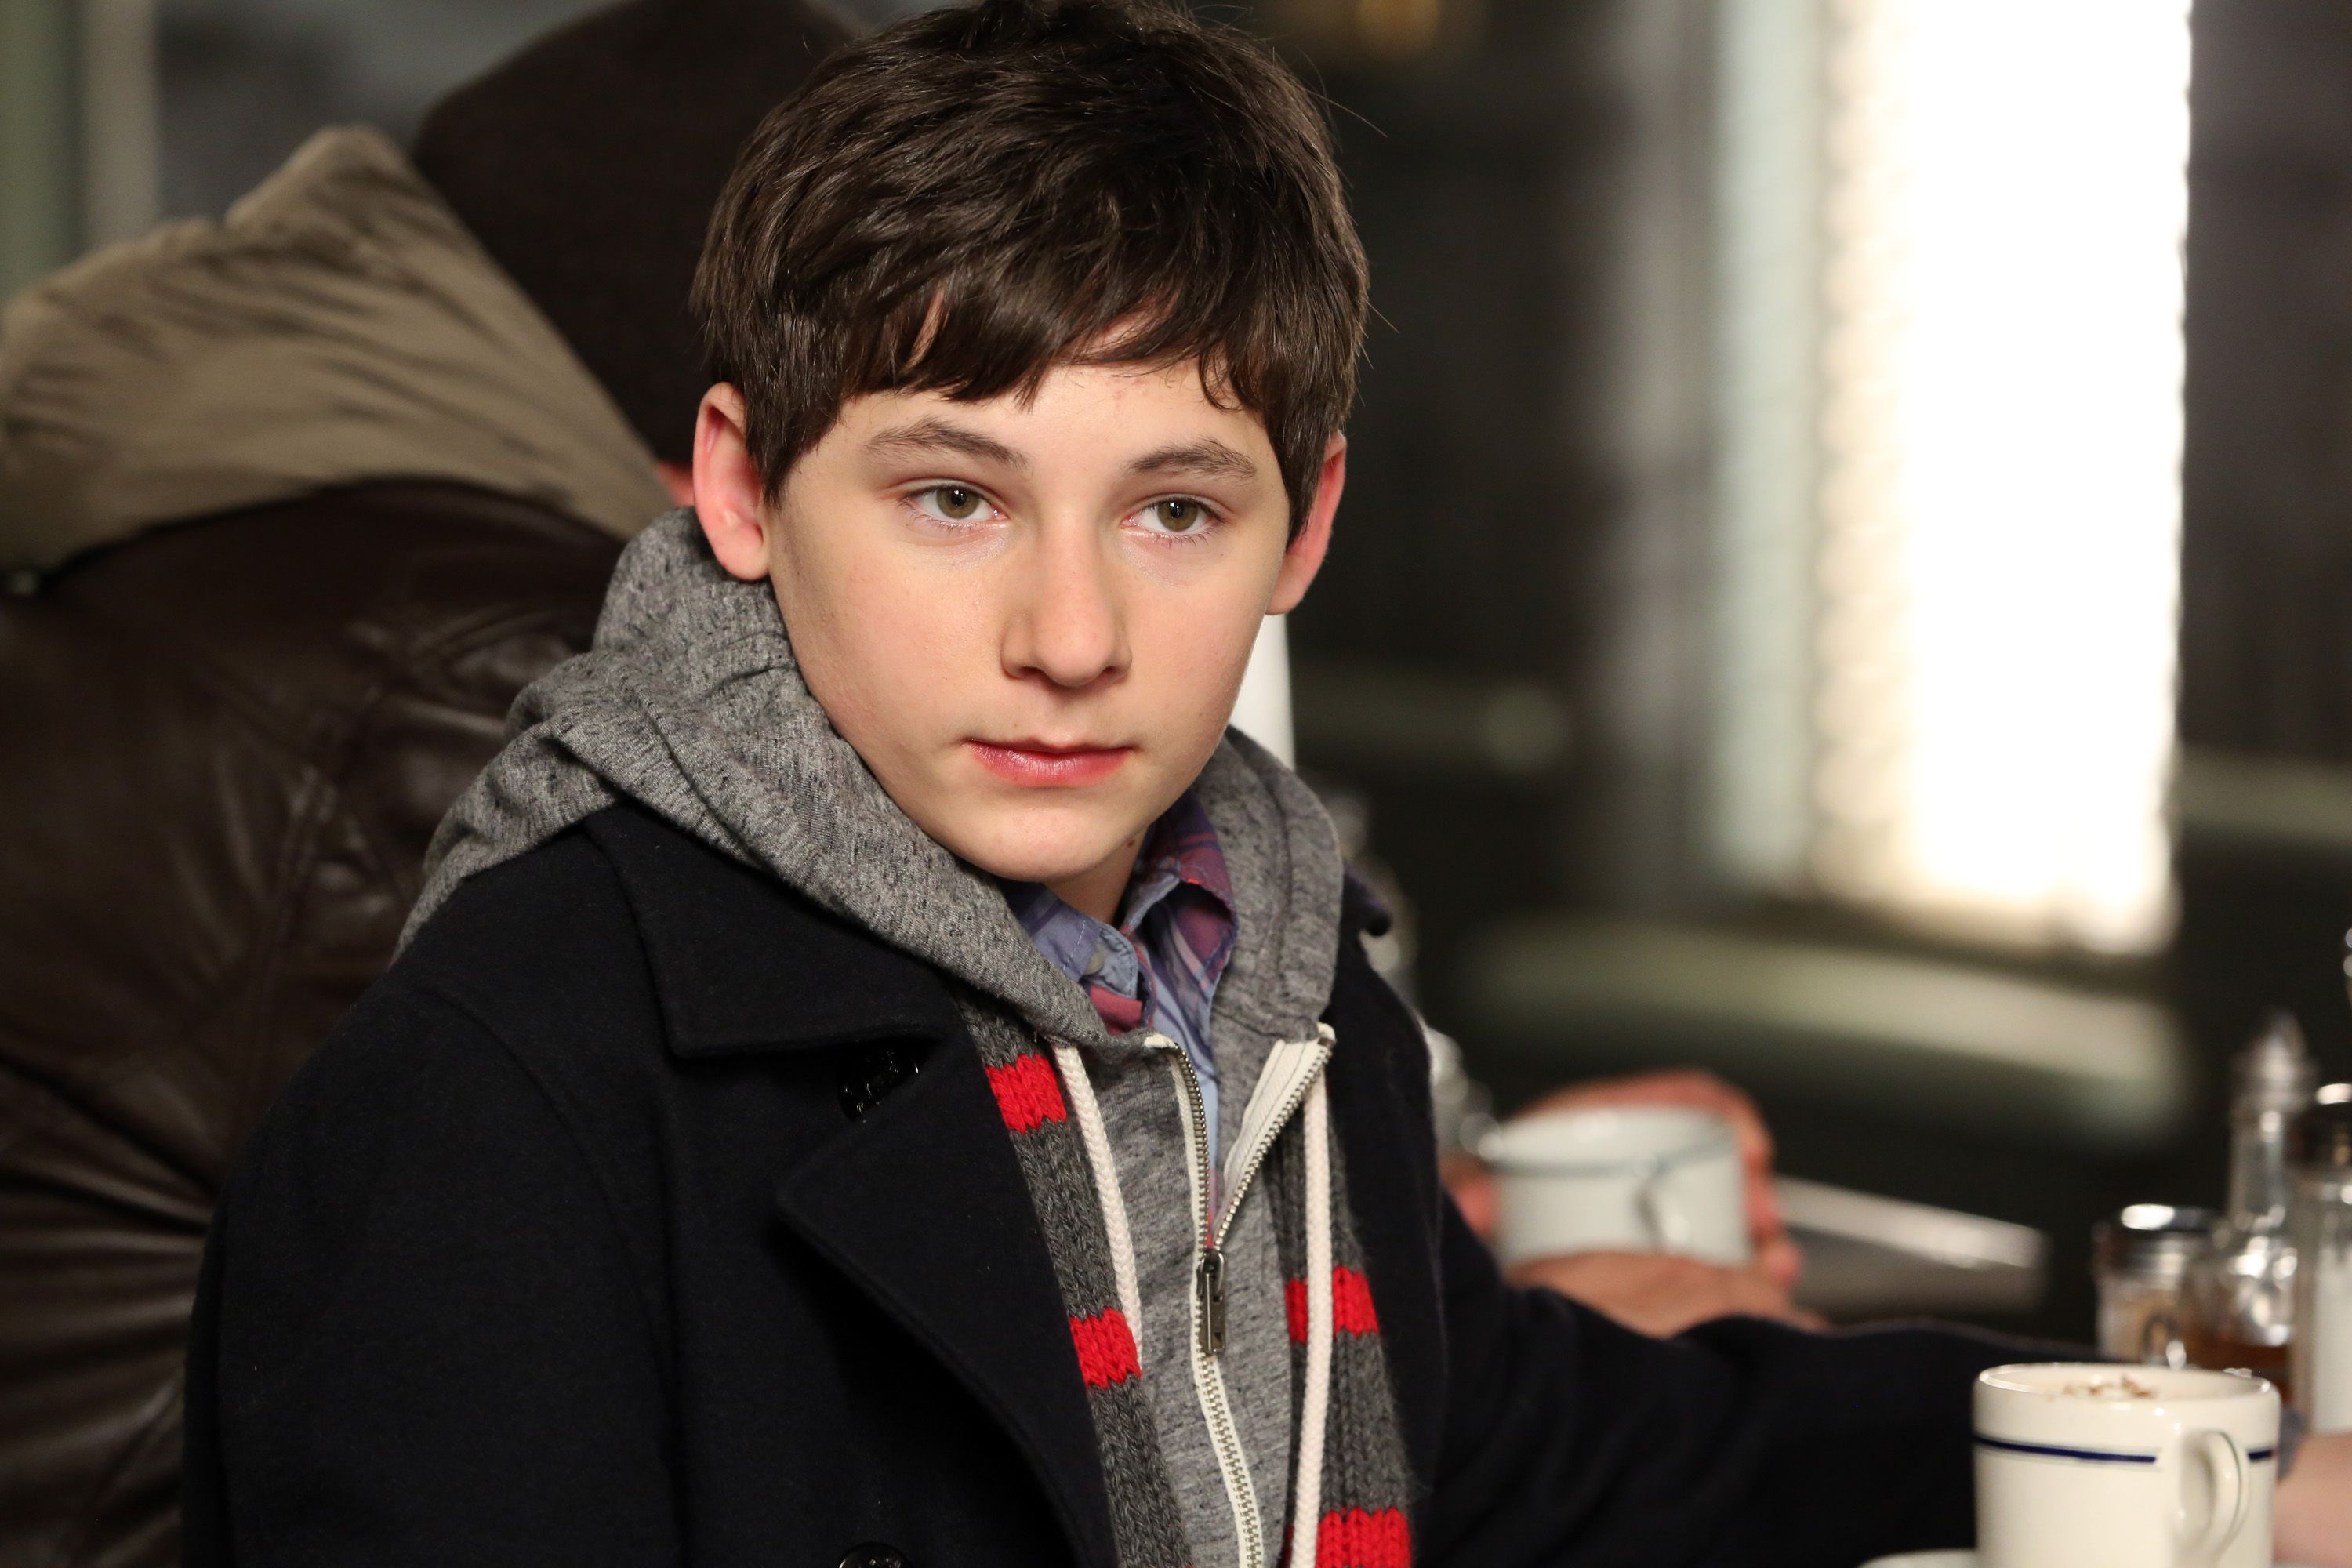 Henry learned all his street smarts from Mom number 1, Emma #OUAT